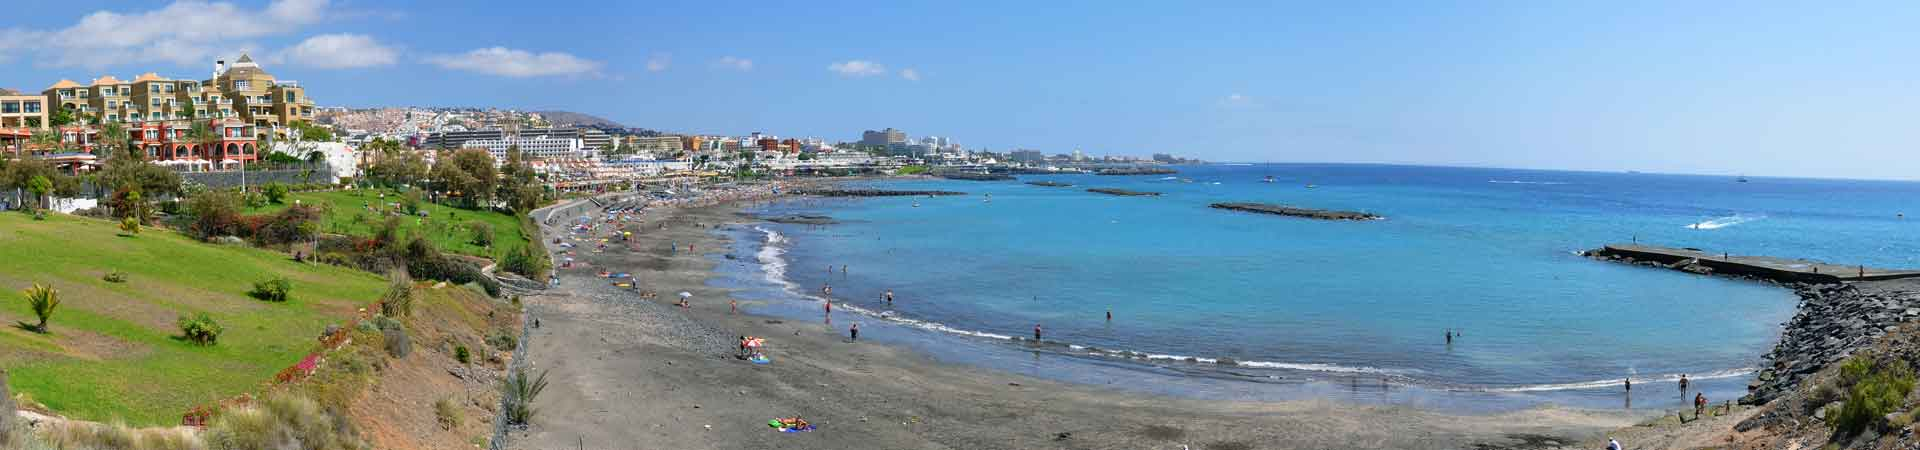 https://www.goodmorningtenerife.com/wp-content/uploads/2016/07/03_slide_beaches-1920x450-good-mrning-tenerife.jpg